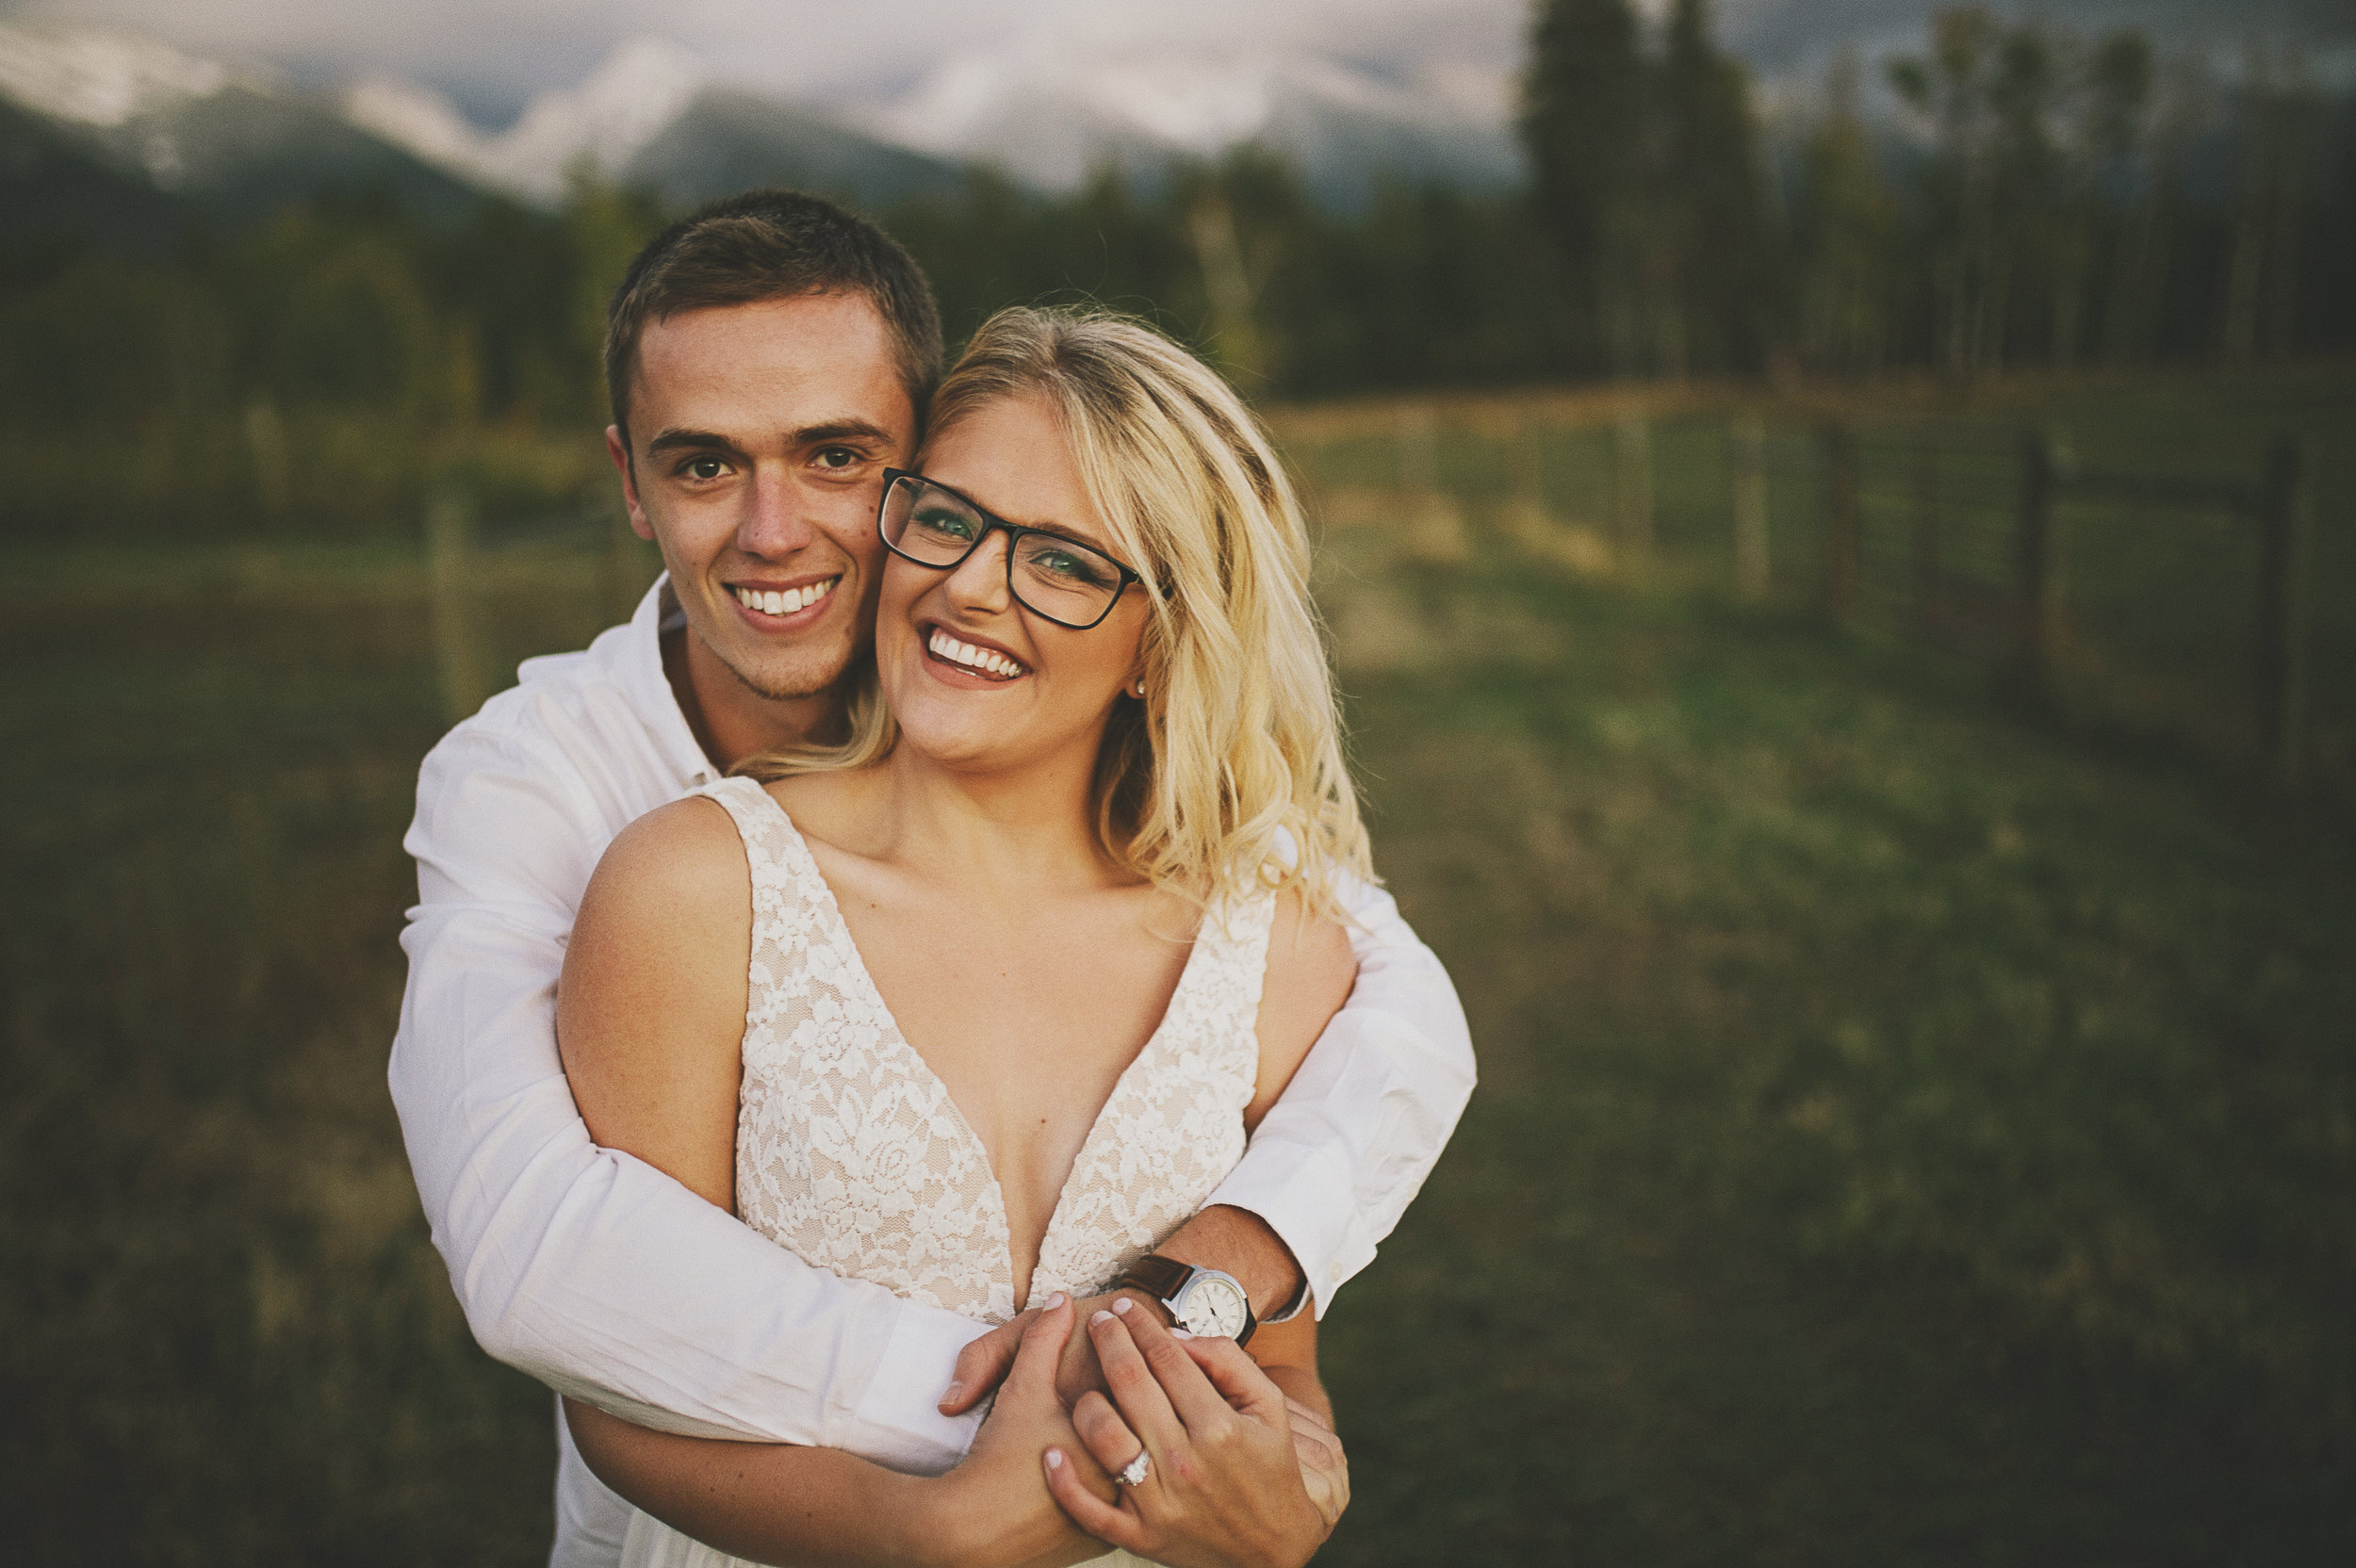 Polson Engagement Session_Katie White and Tommy Tosic_Sky Ridge Ranch Engagement_Montana Wedding Photographer_Kelsey Lane Photography-7645 copy.jpg